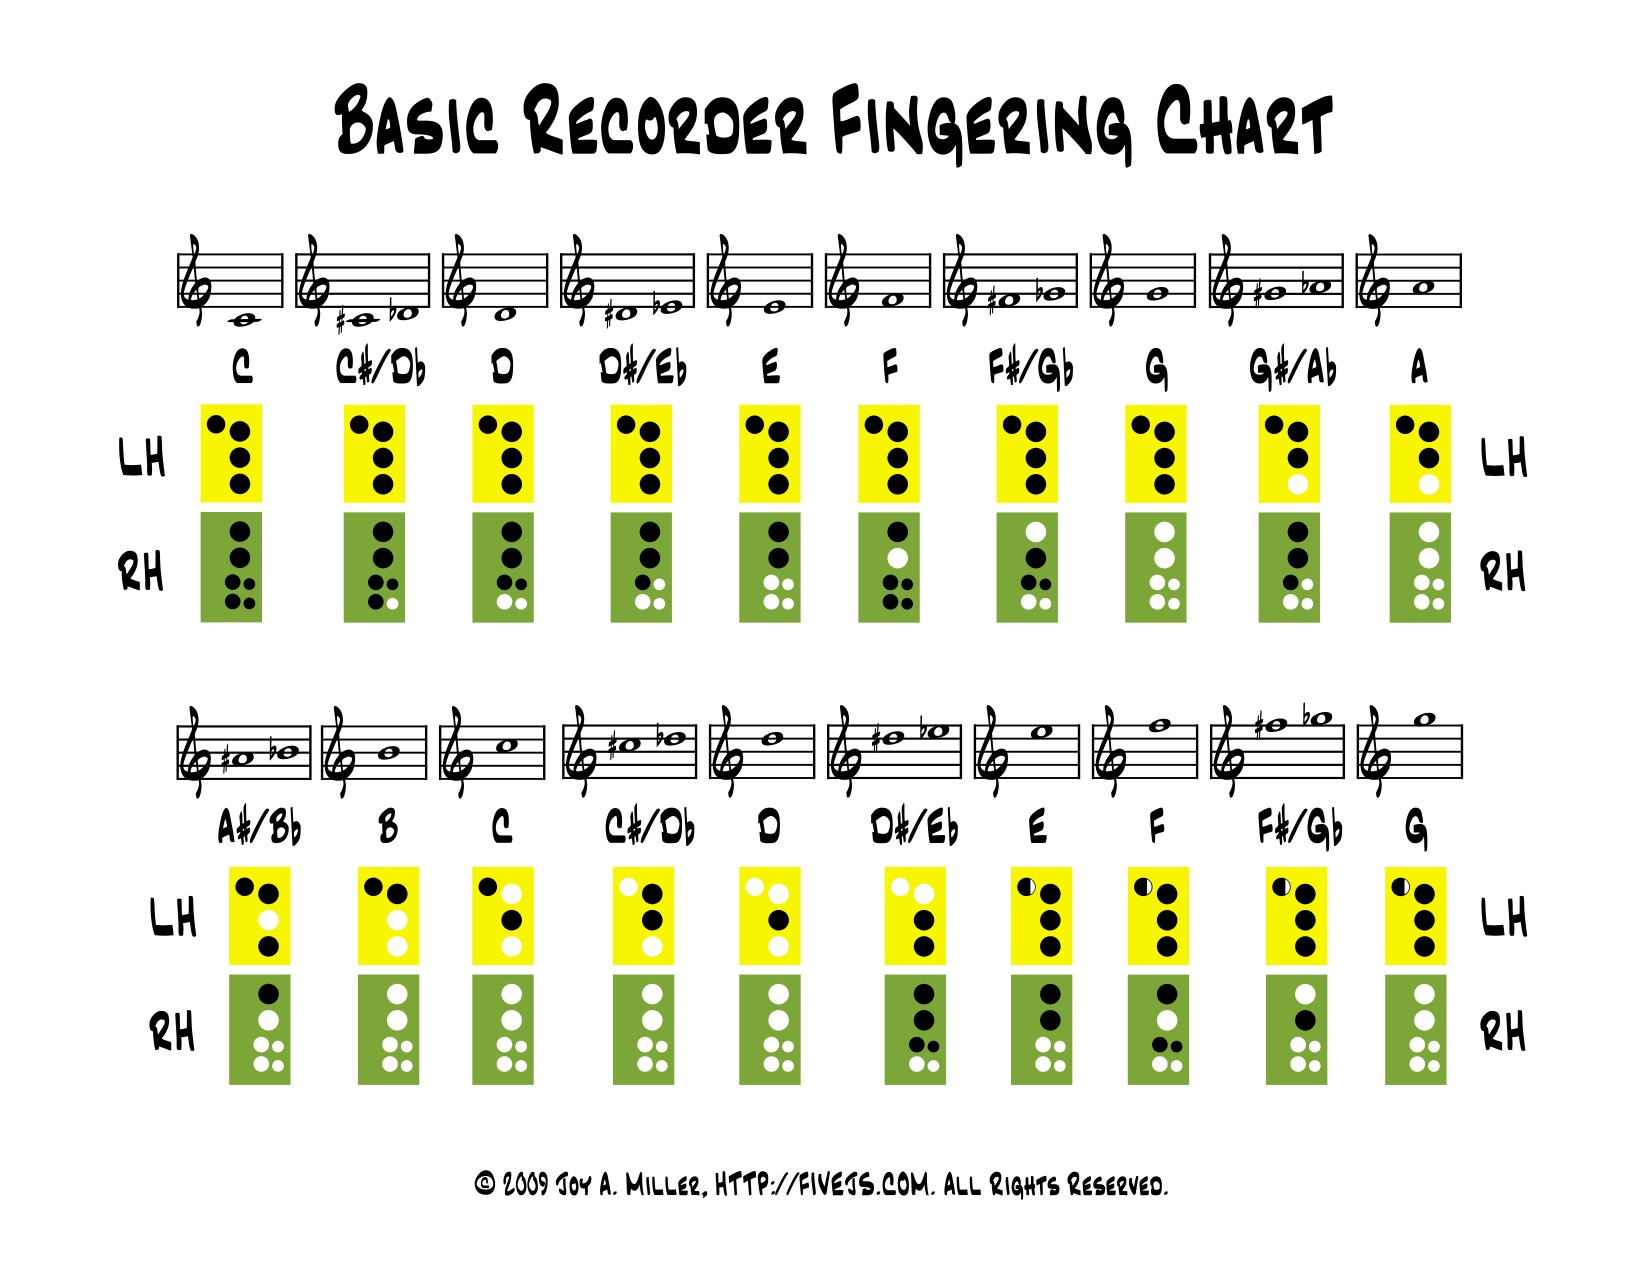 Recorder notes with diagram wiring library this is a pdf file of a colorful recorder finger chart i made the rh pinterest com diagram on a recorder notes diagram on a recorder notes ccuart Gallery